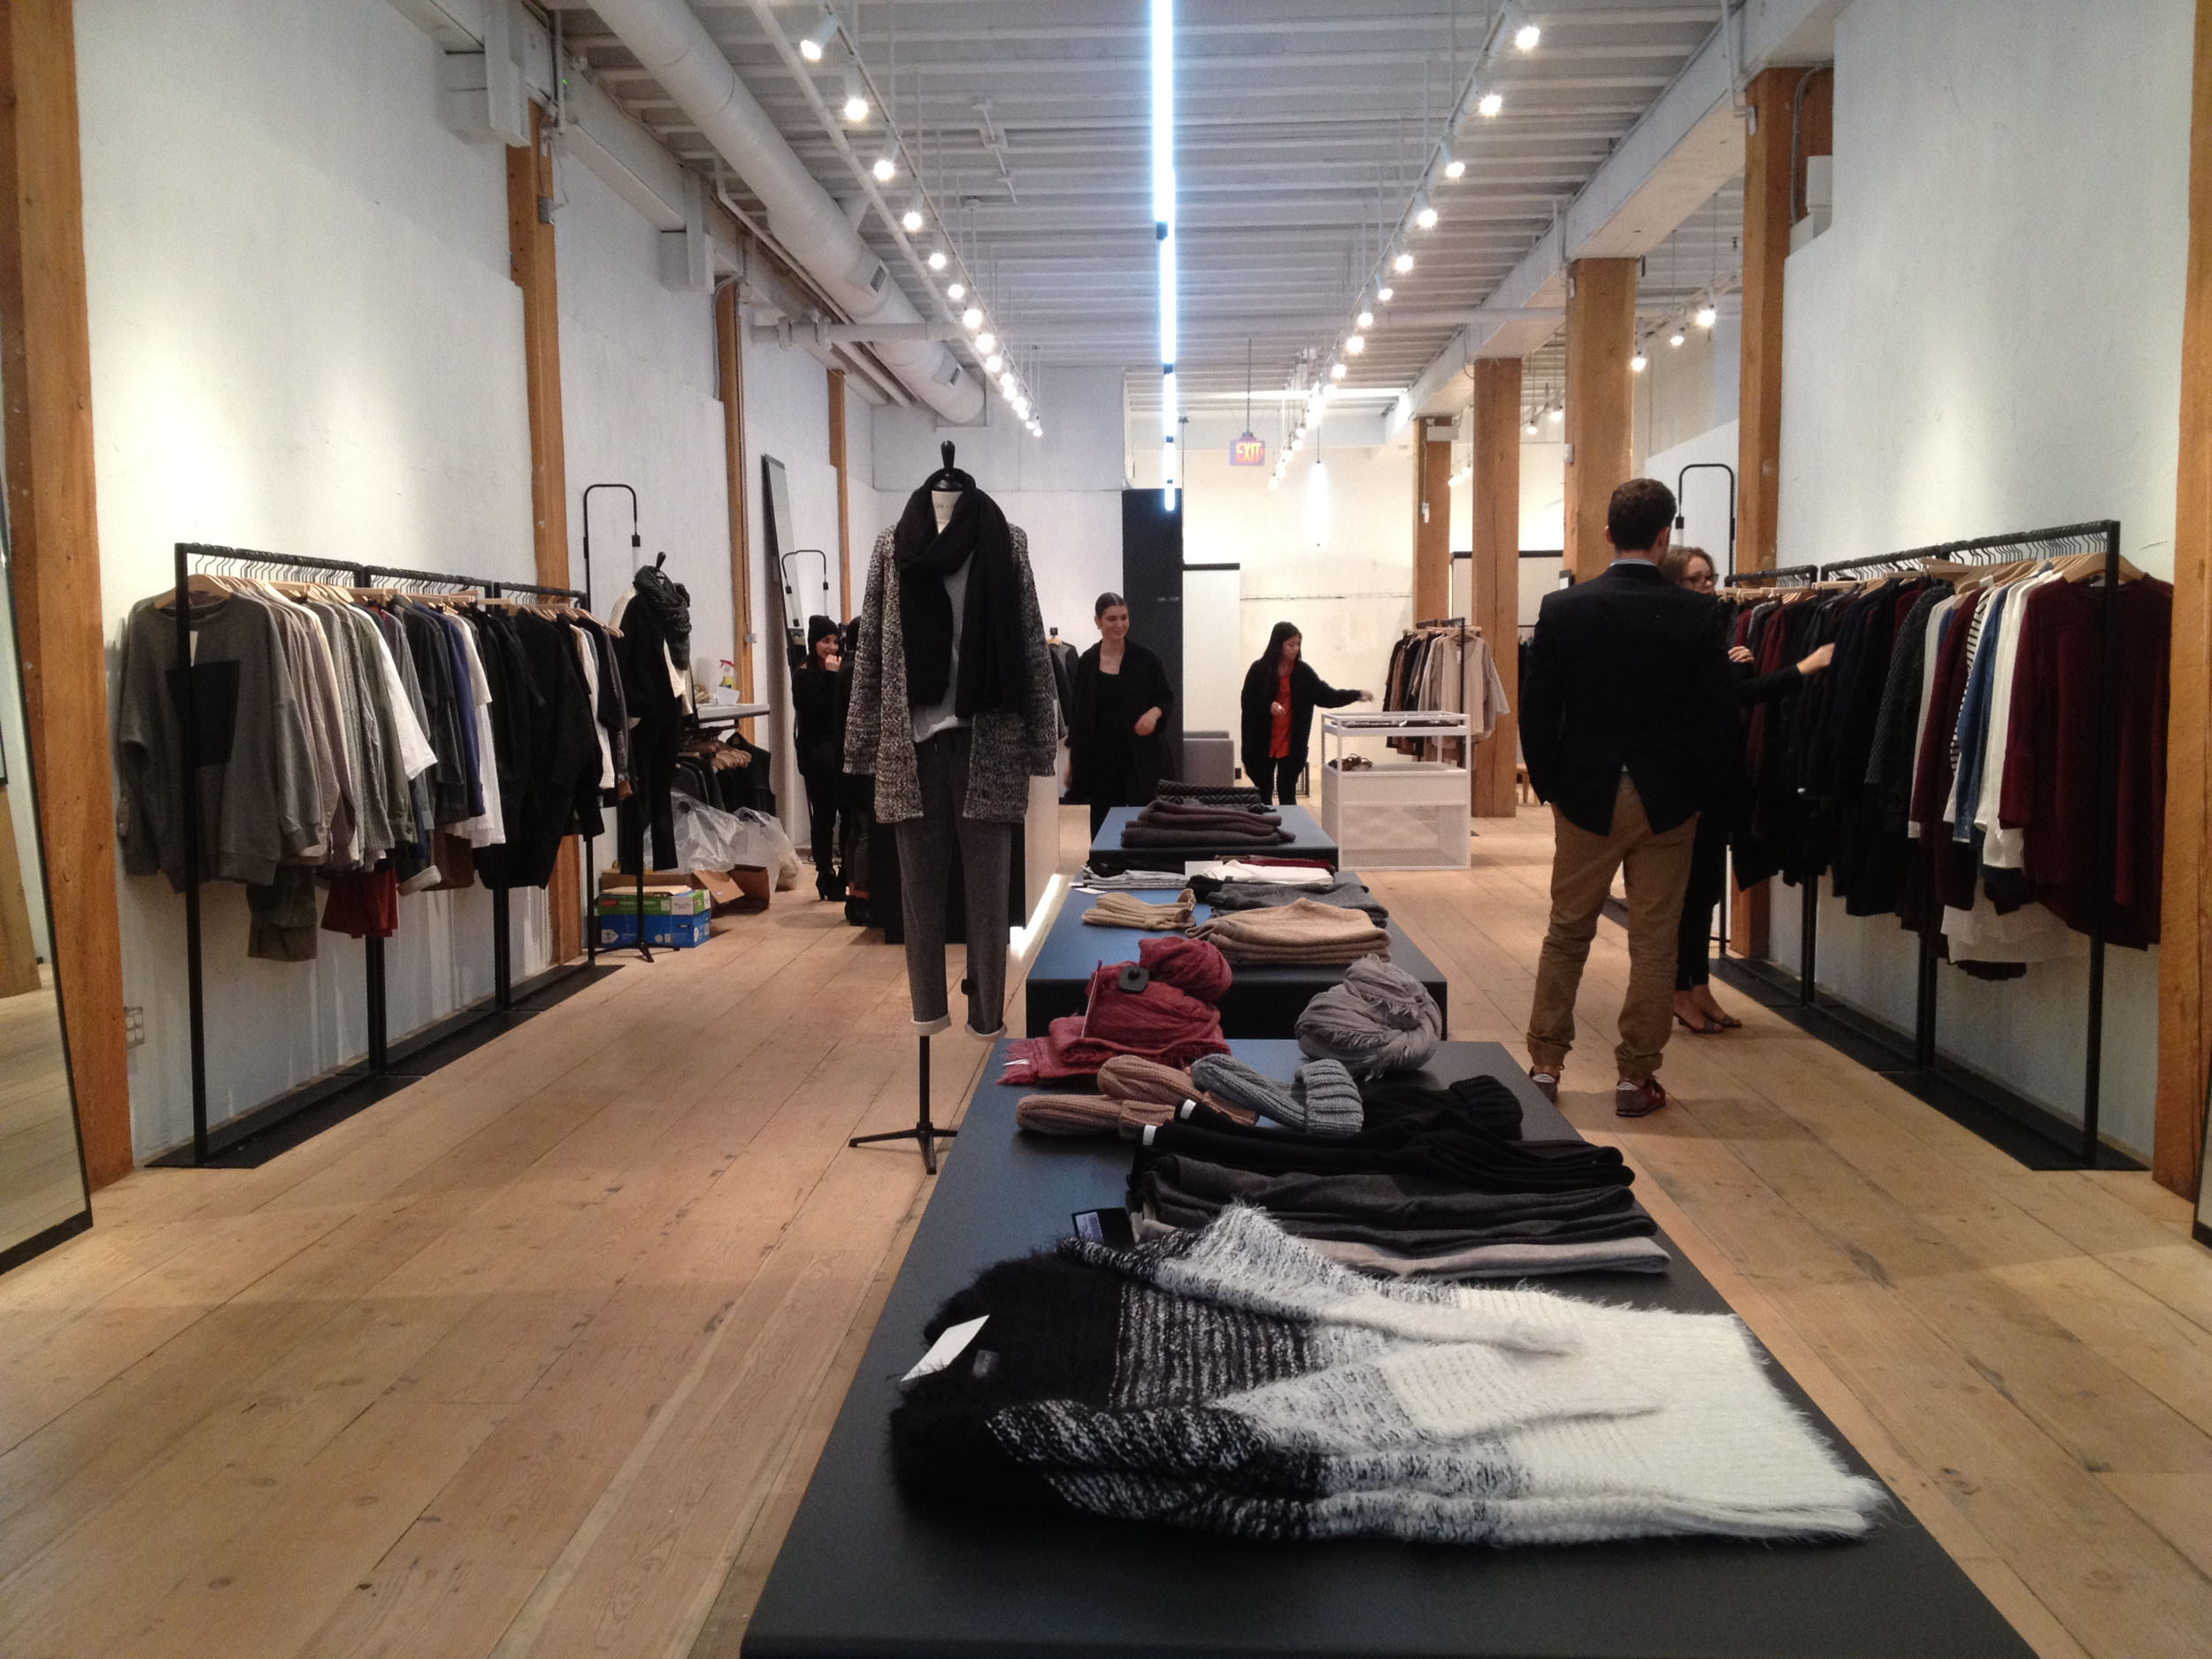 Hairy Fort Locations New Store Relocates To A Larger Location Fort Bag Oak Gastown Styleby Fire New Store Relocates To A Larger Location Gastown Oak houzz 01 Oak And Fort